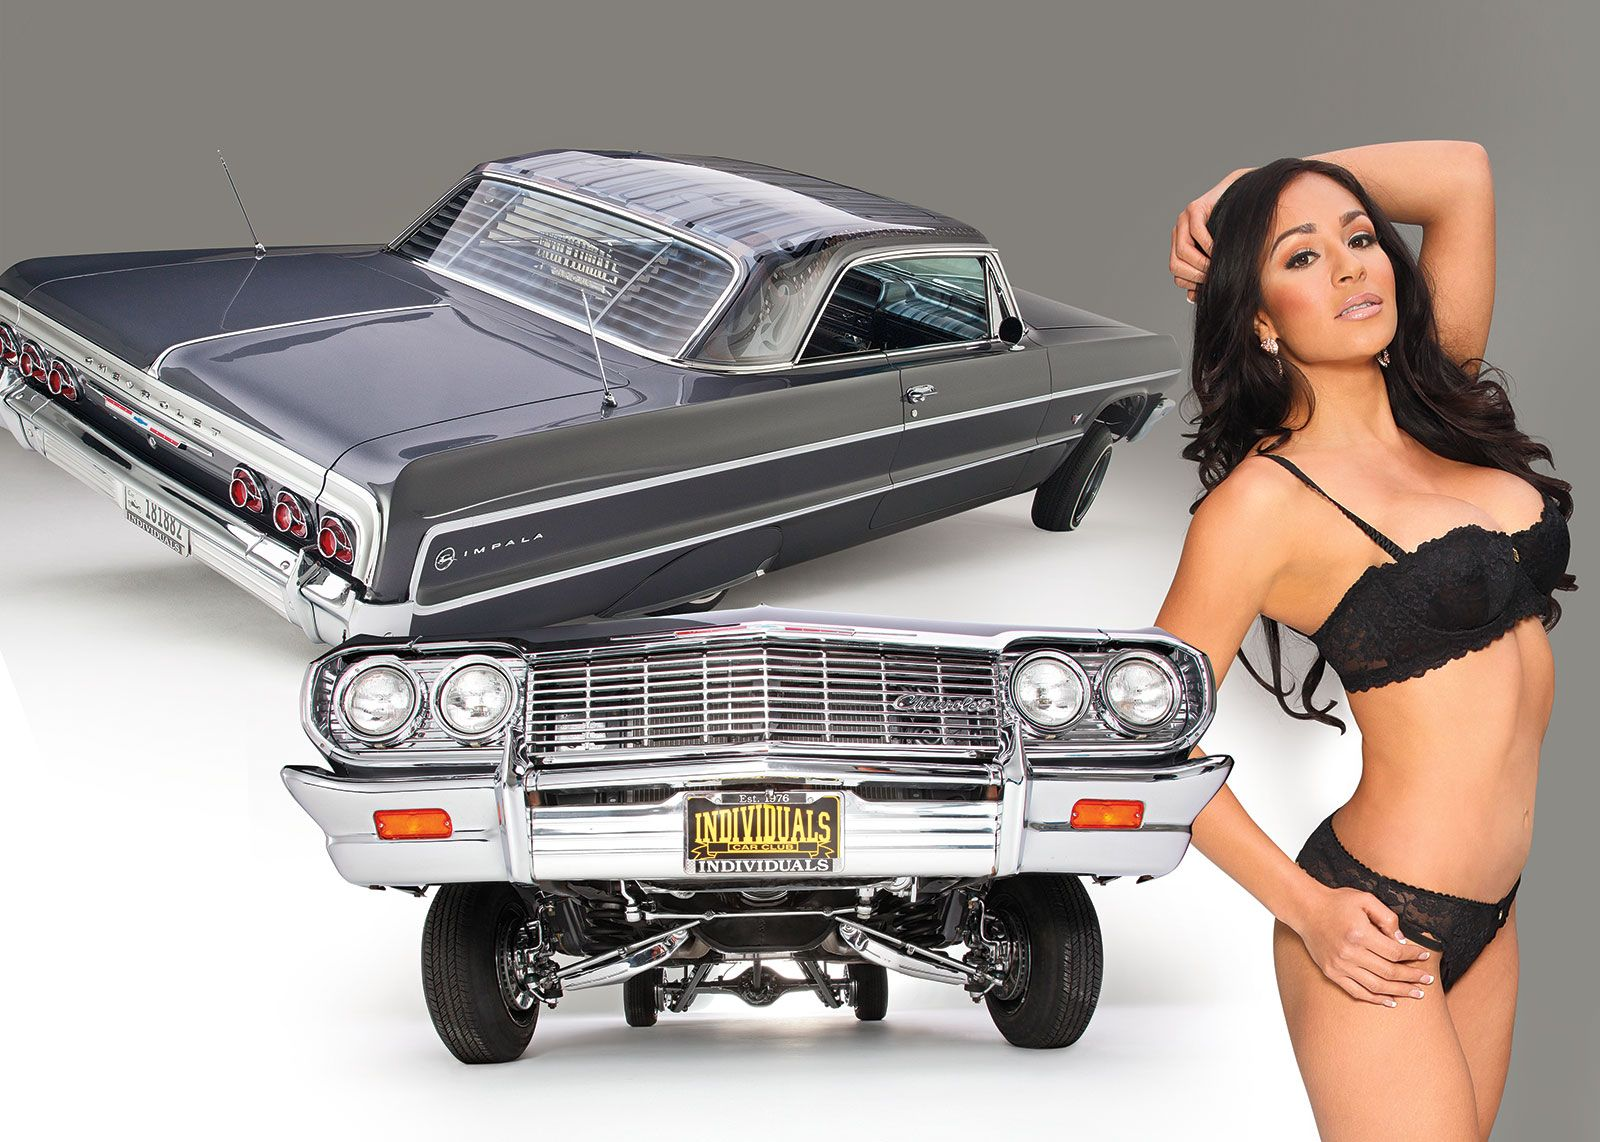 topless-lowrider-chick-kurtis-leduc-shaved-heads